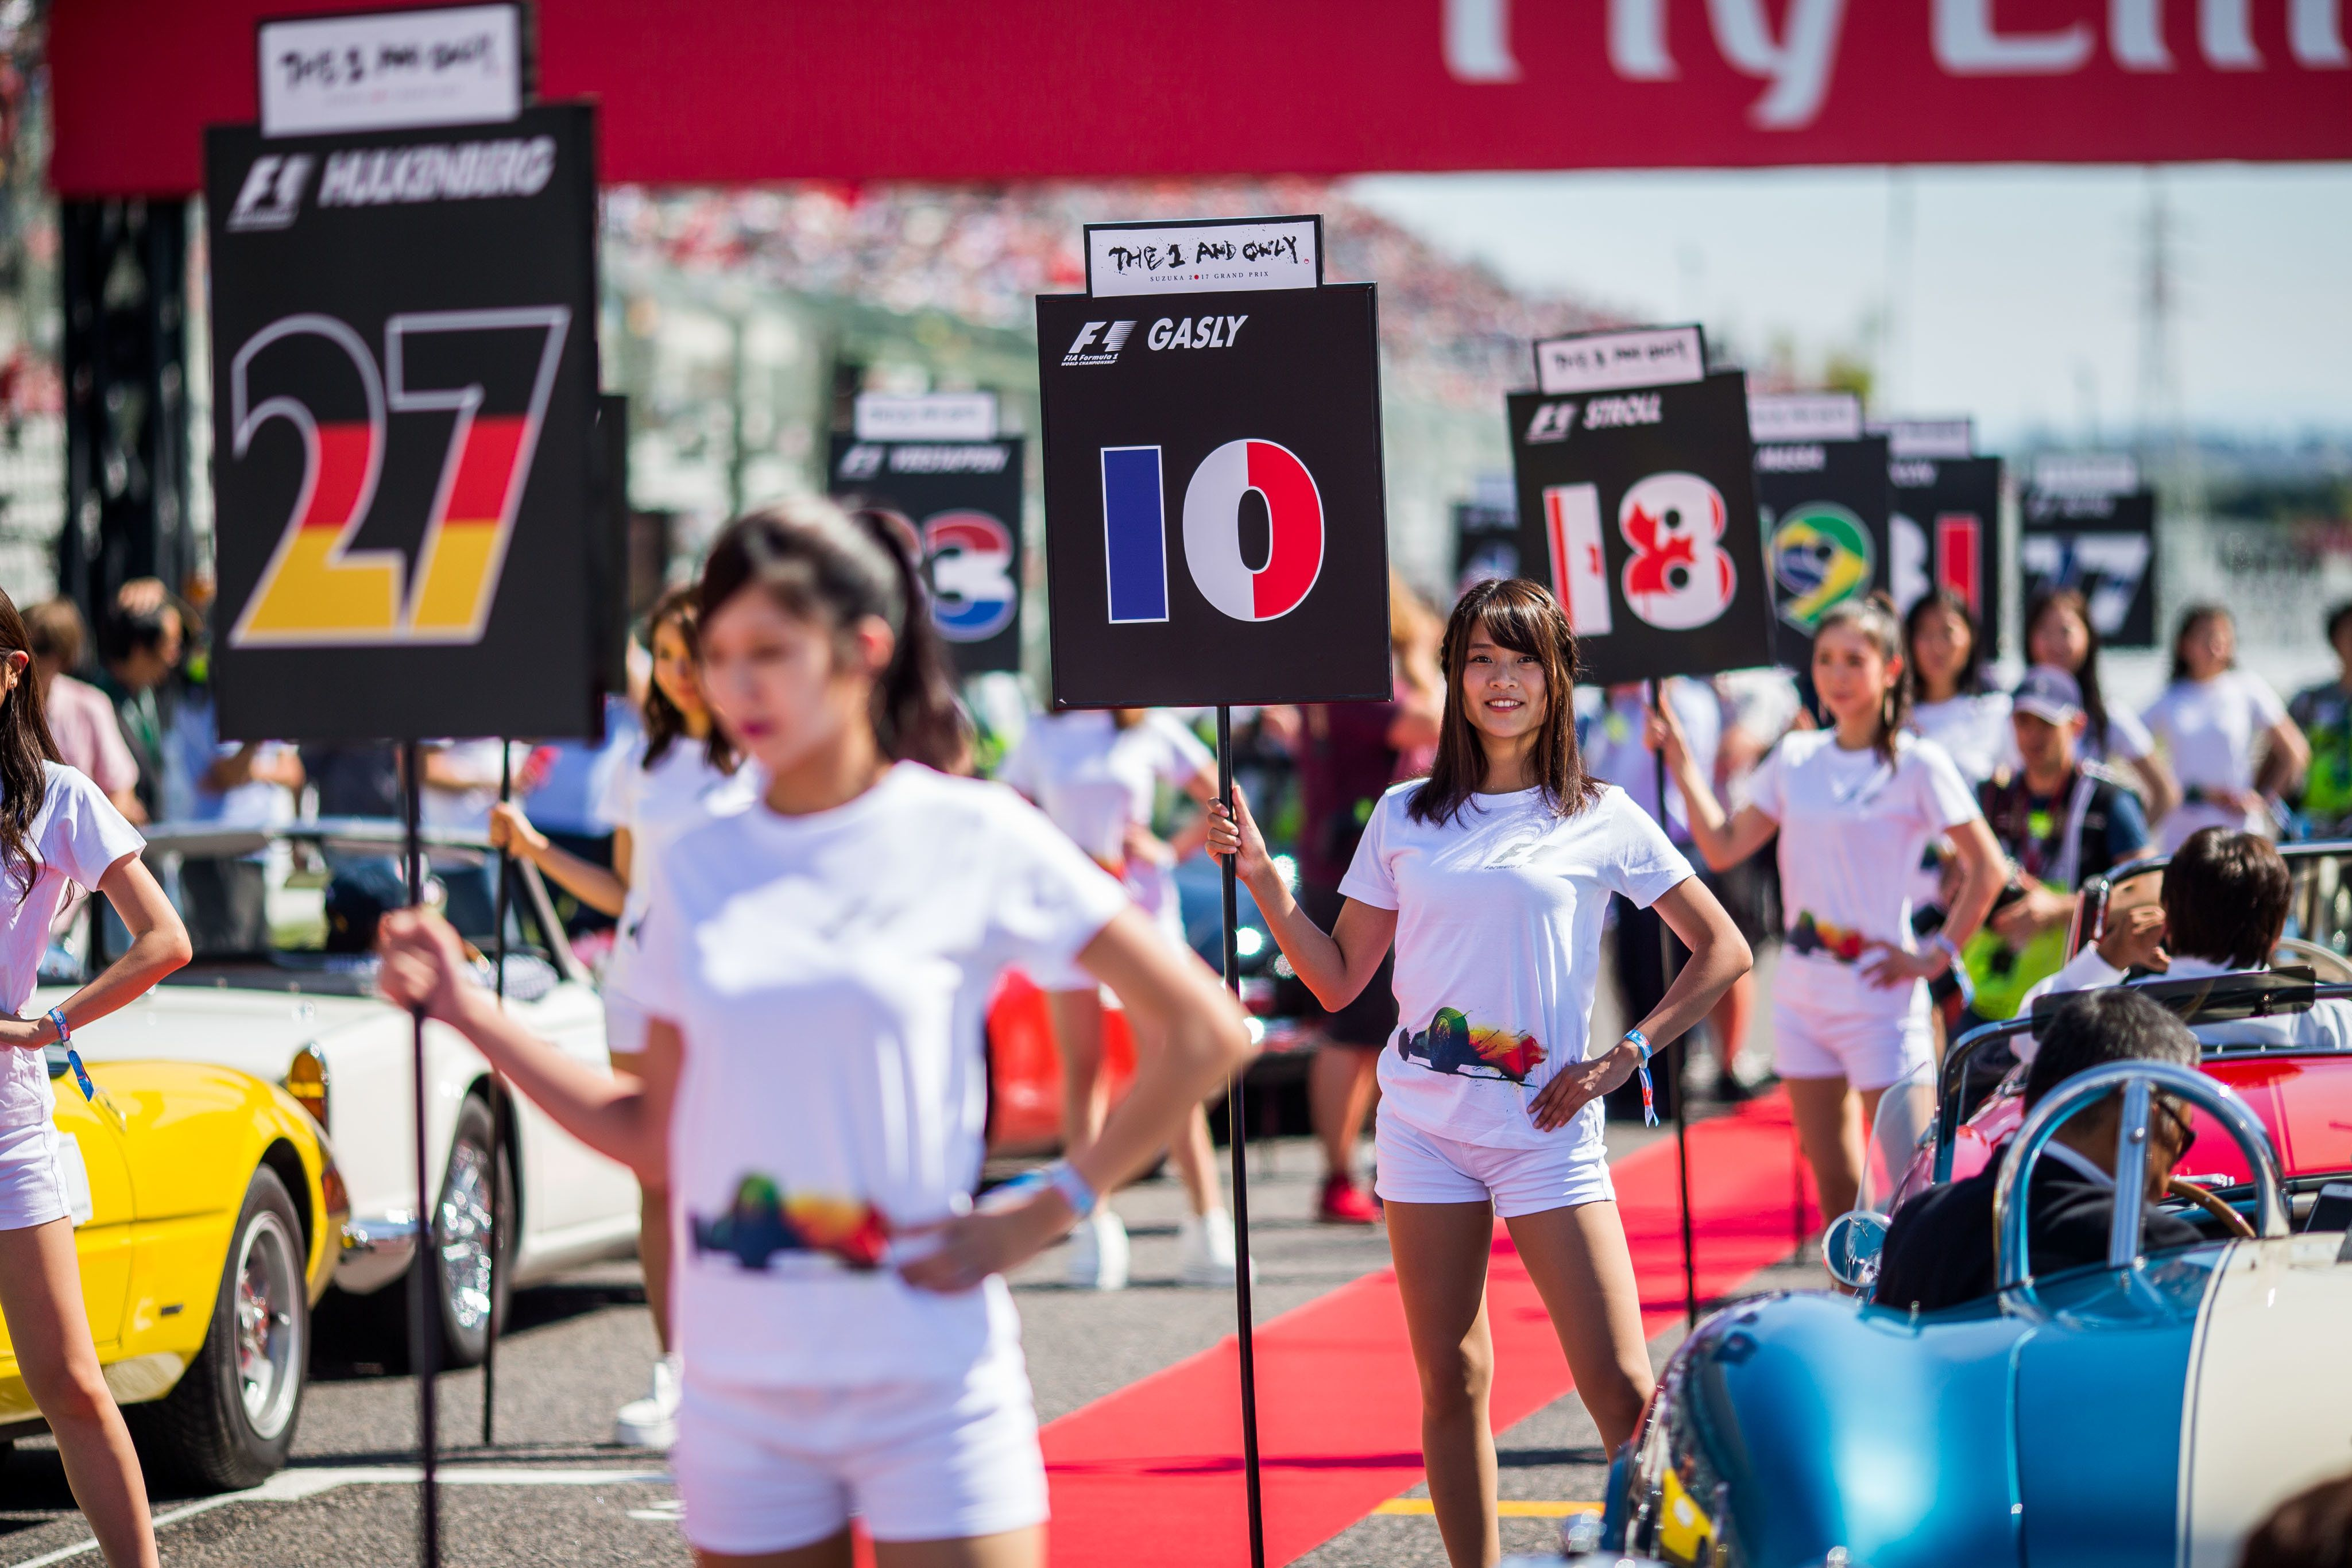 Formula 1 Ends Use Of 'Grid Girls' Just Days After 'Walk-On Girls' Banned In